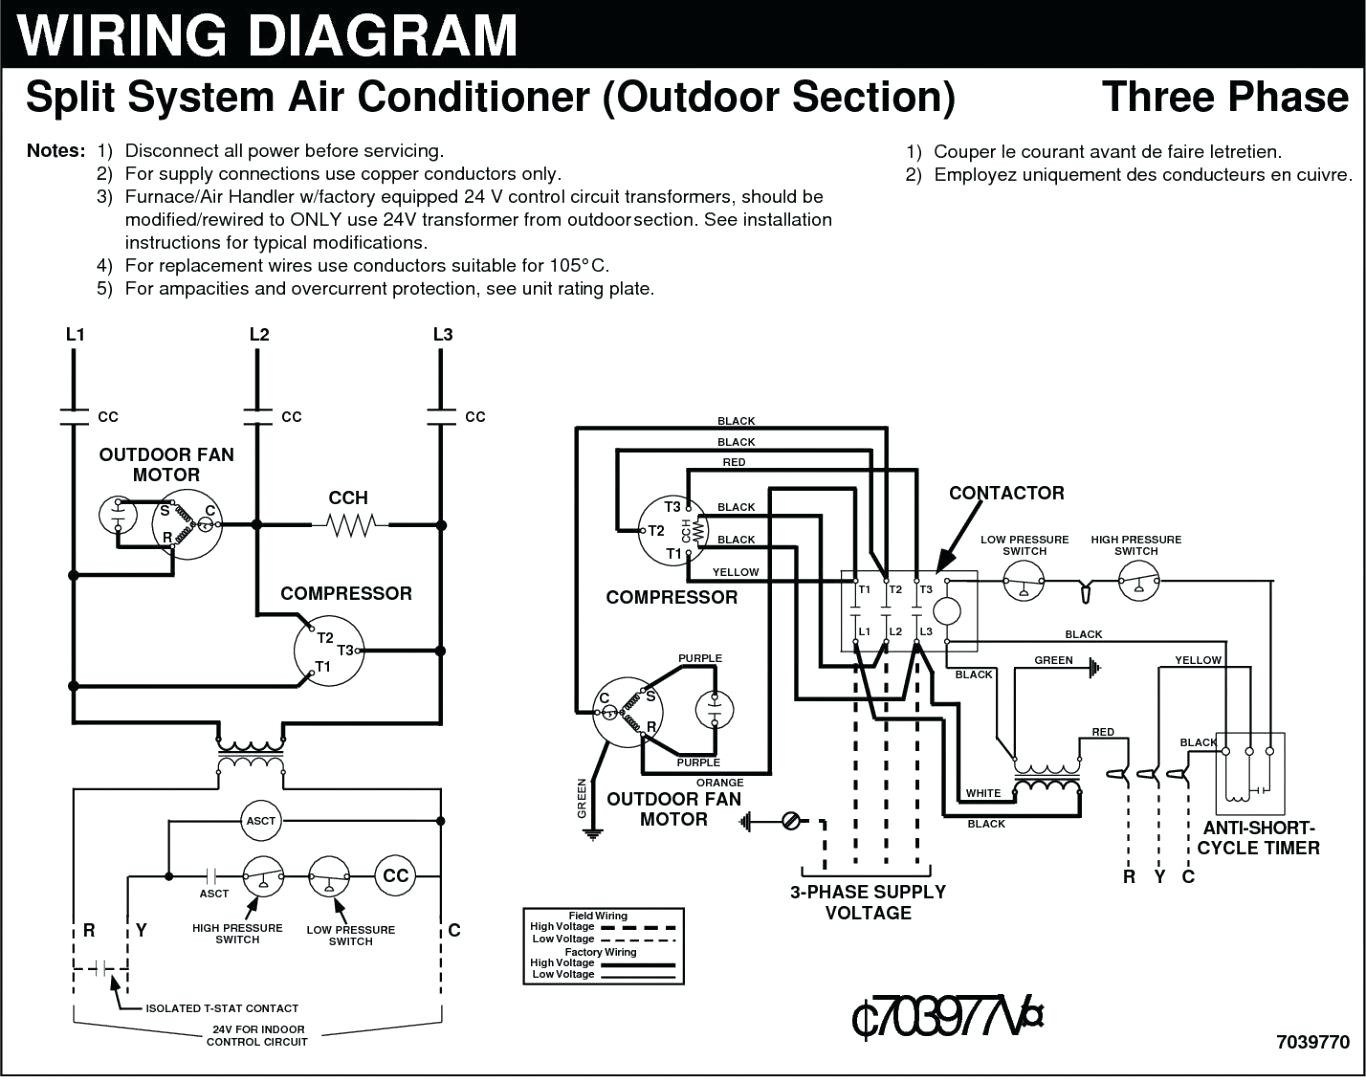 [DIAGRAM] Need To Find Out If I Can Get An Ac Wiring